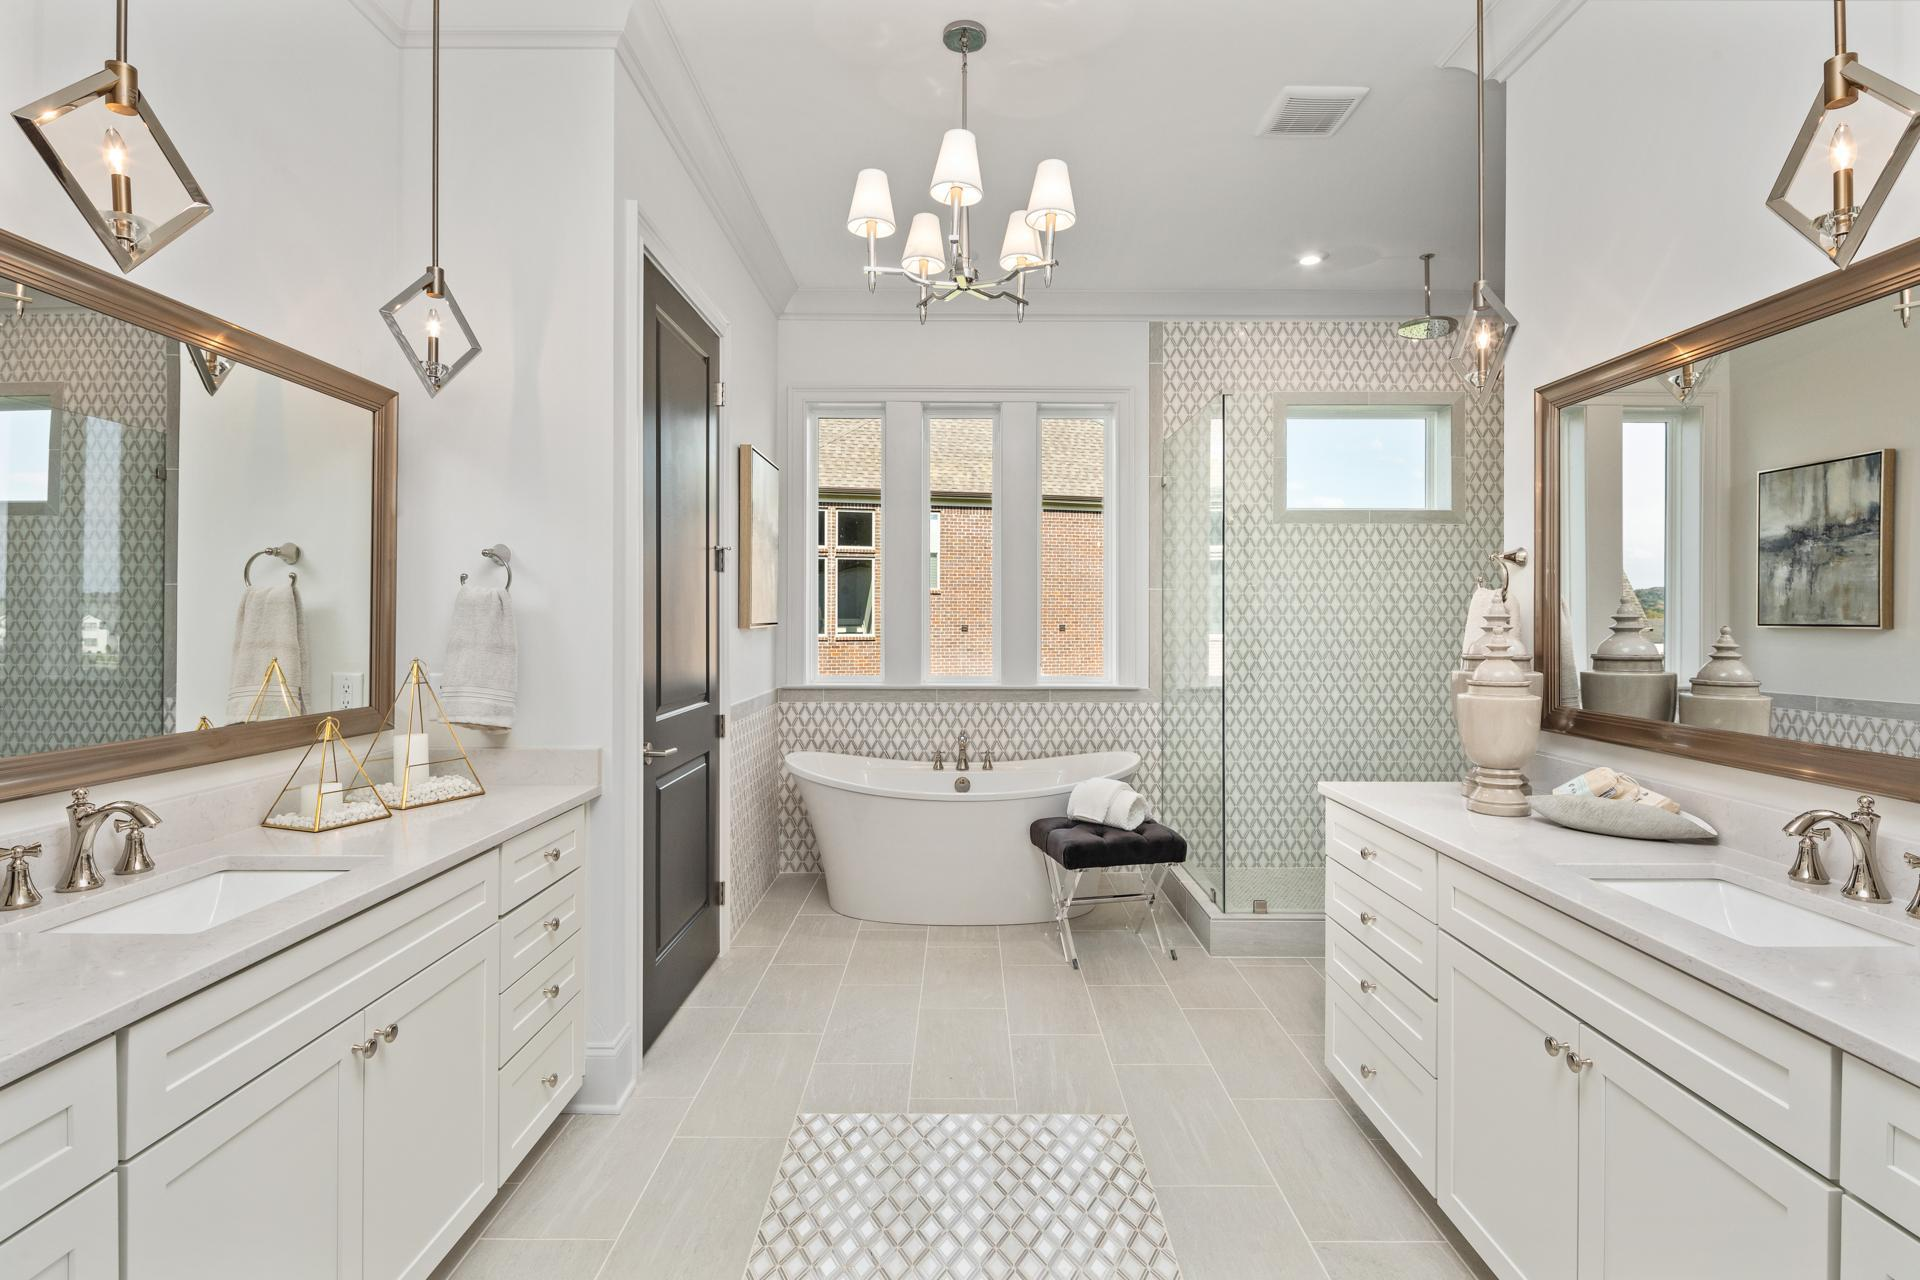 Bathroom featured in the Elmsdale By Drees Homes in Nashville, TN